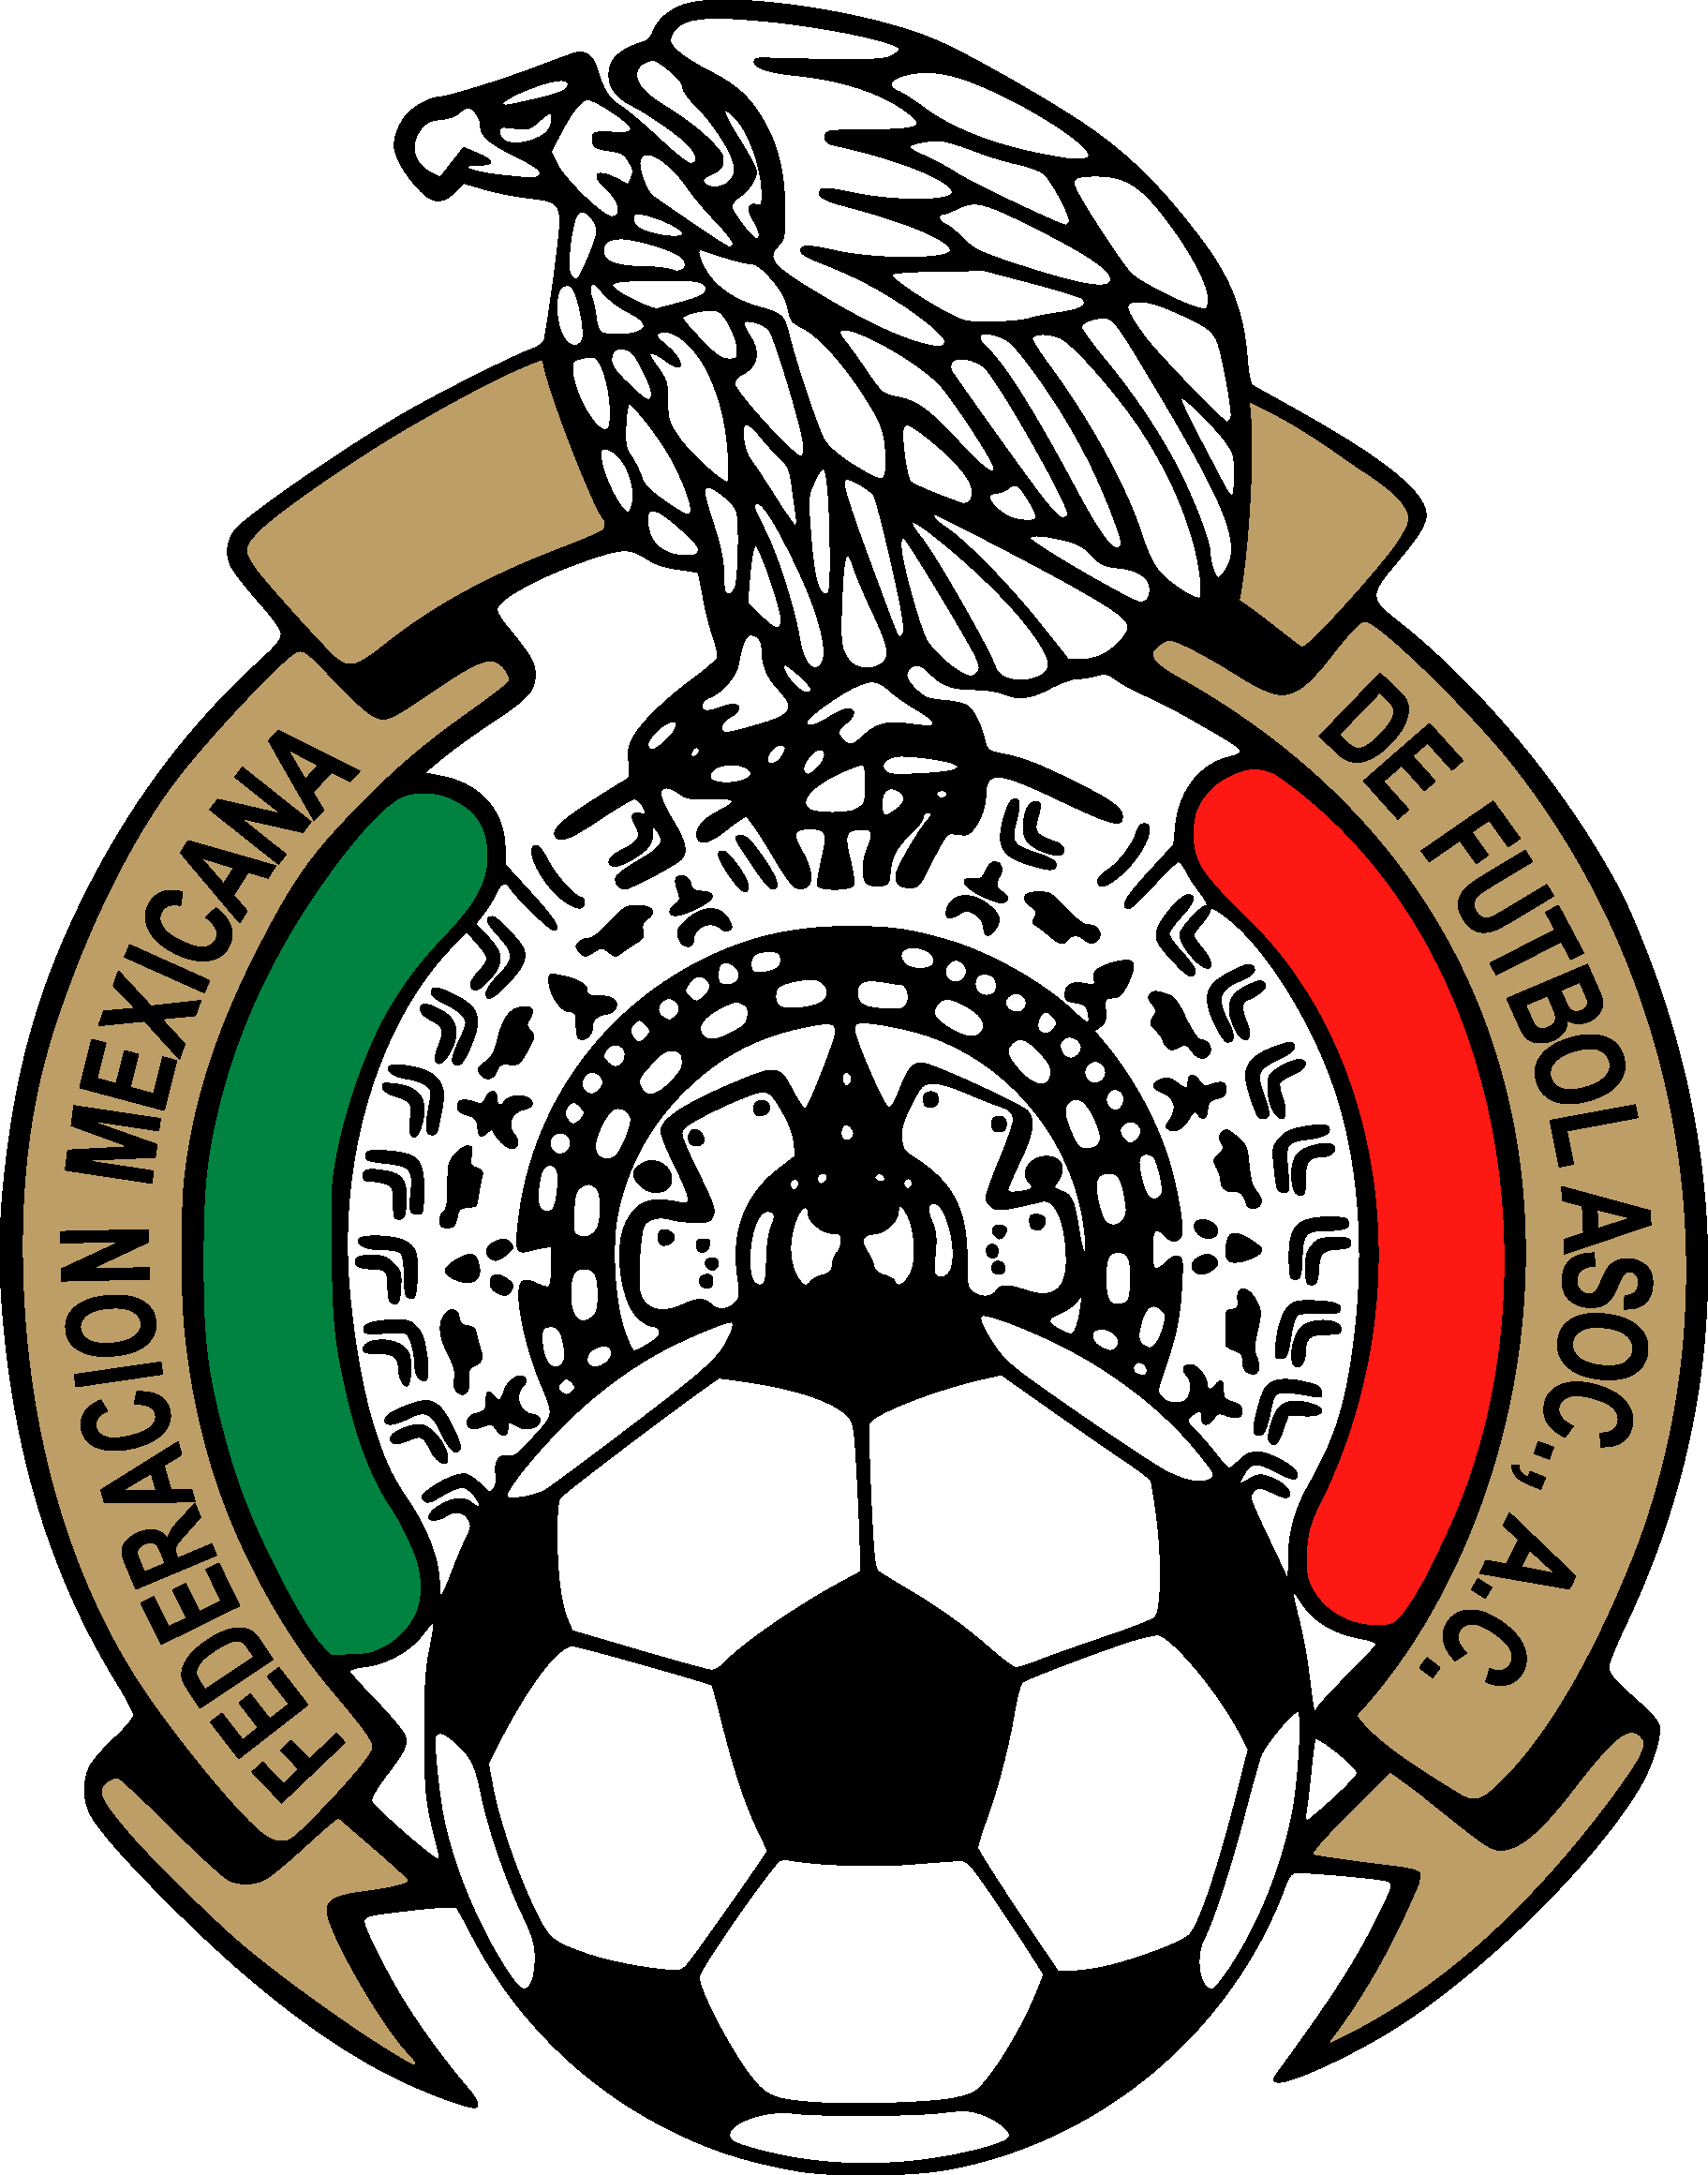 Modern football clipart clip freeuse download Mexican Football Federation & Mexico National Football Team Logo ... clip freeuse download